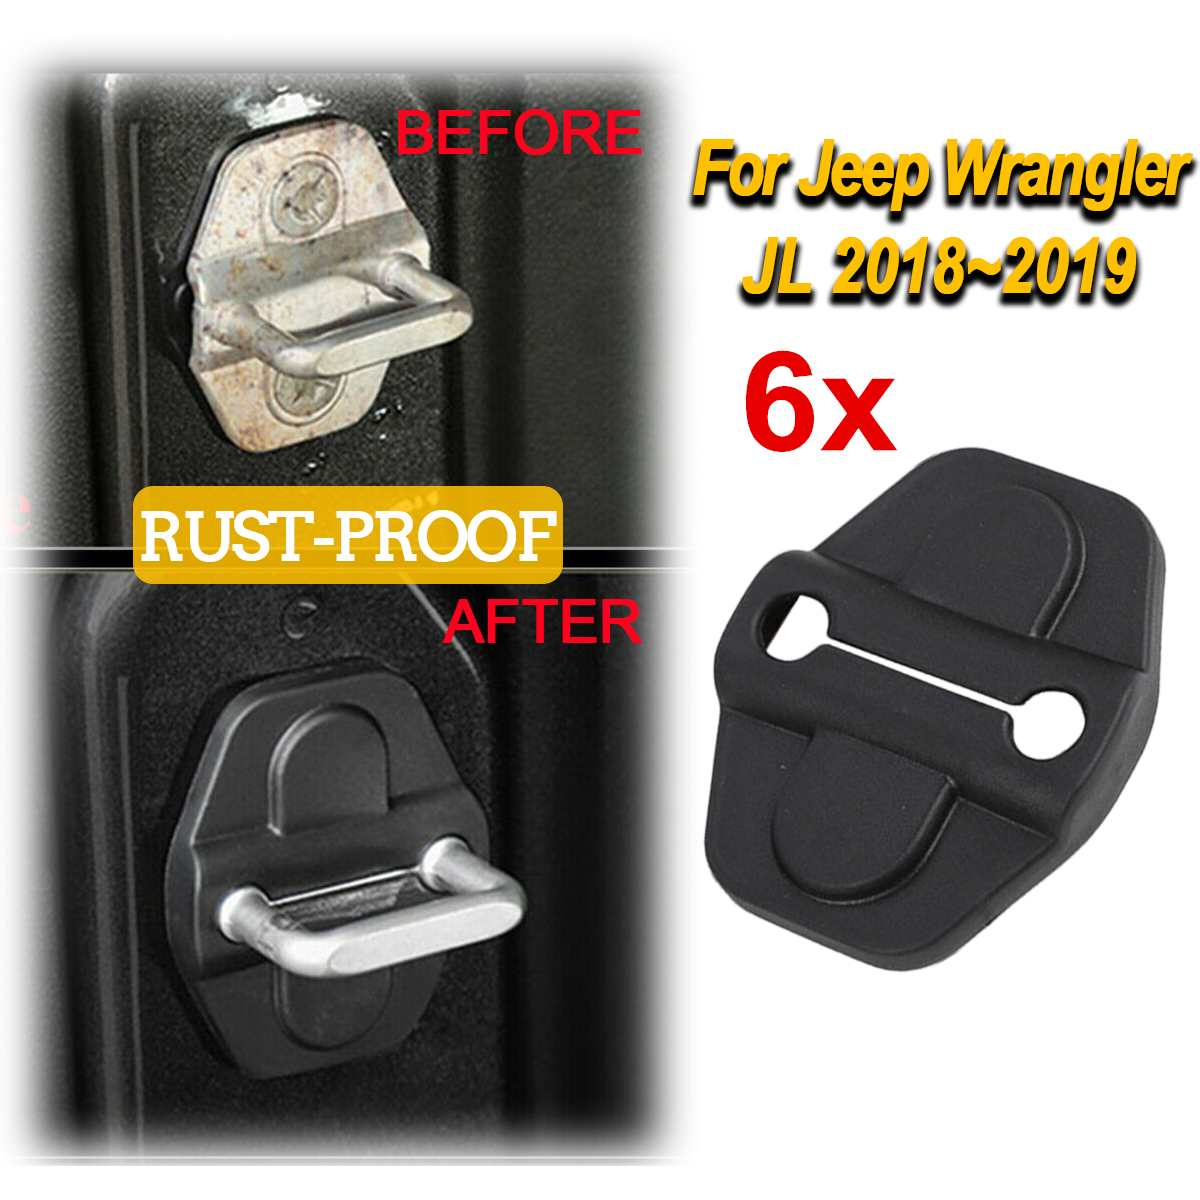 ABS Door Lock Protective Cover For Jeep For Wrangler JL 2 4 Door 2018-2019 Accessories Car Interior Parts Anti-rust Cover